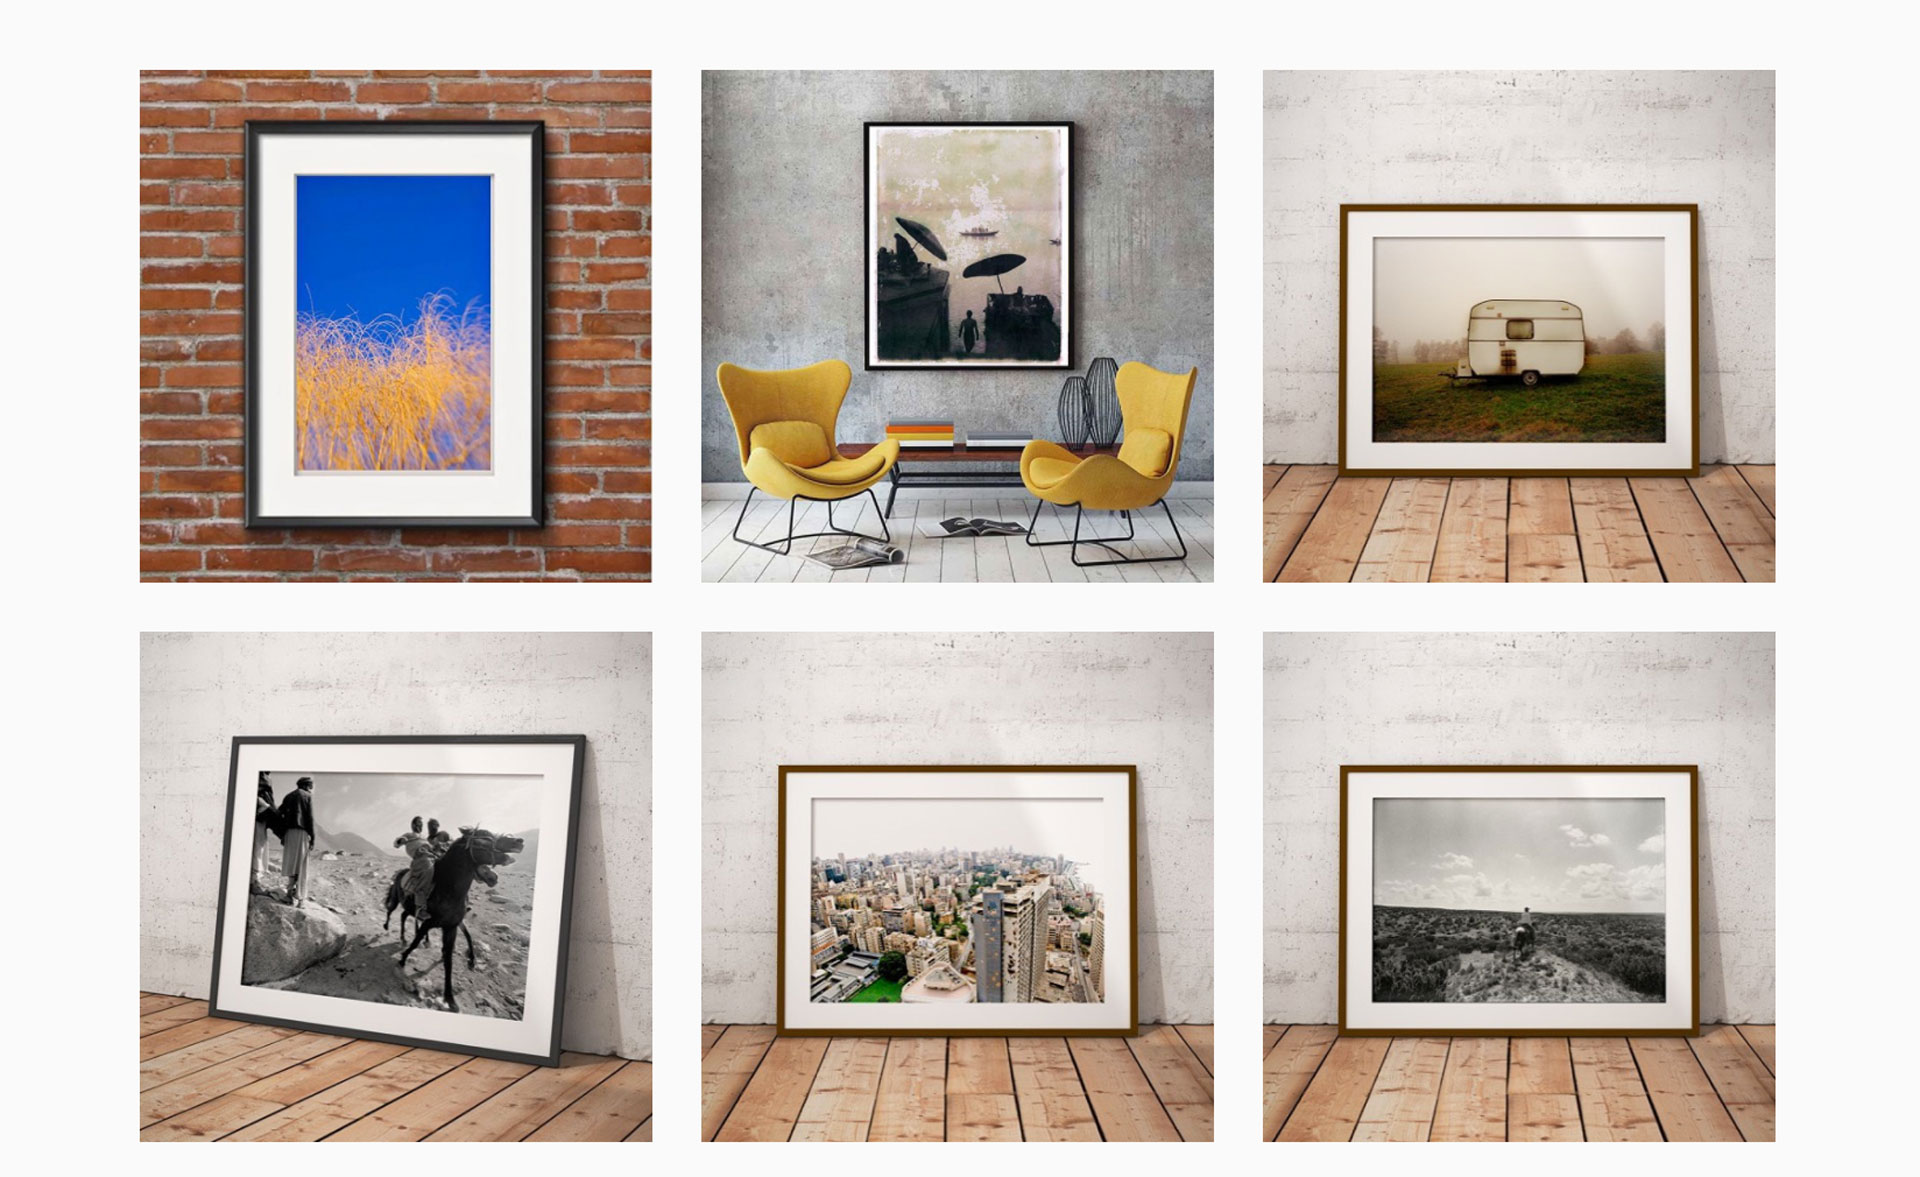 Various framed prints - Helen Jones-Florio online gallery collective of photographers